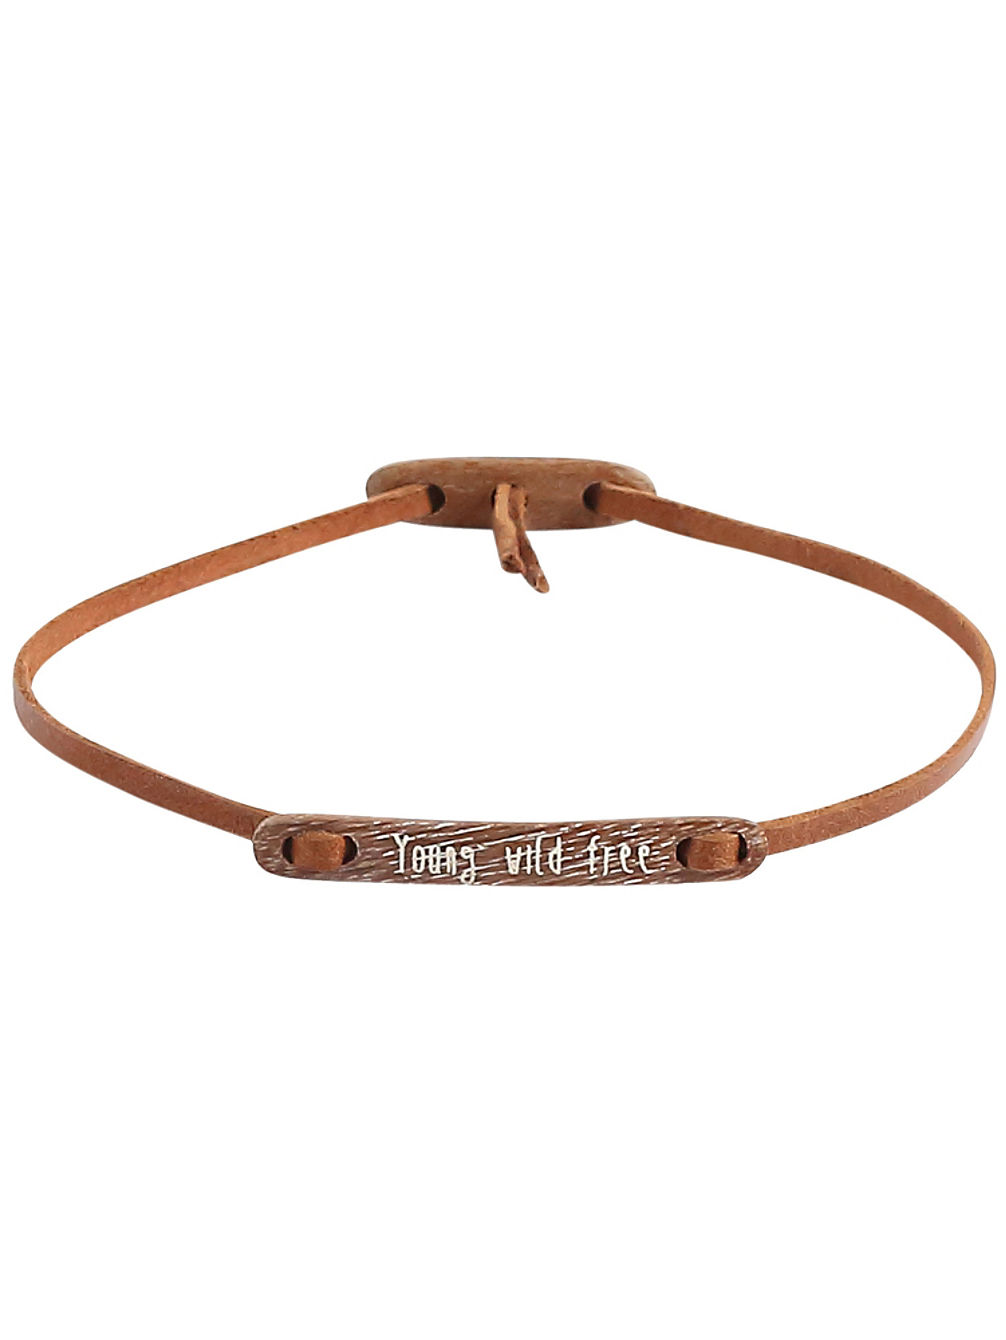 Message Young Wild Free Bracelet